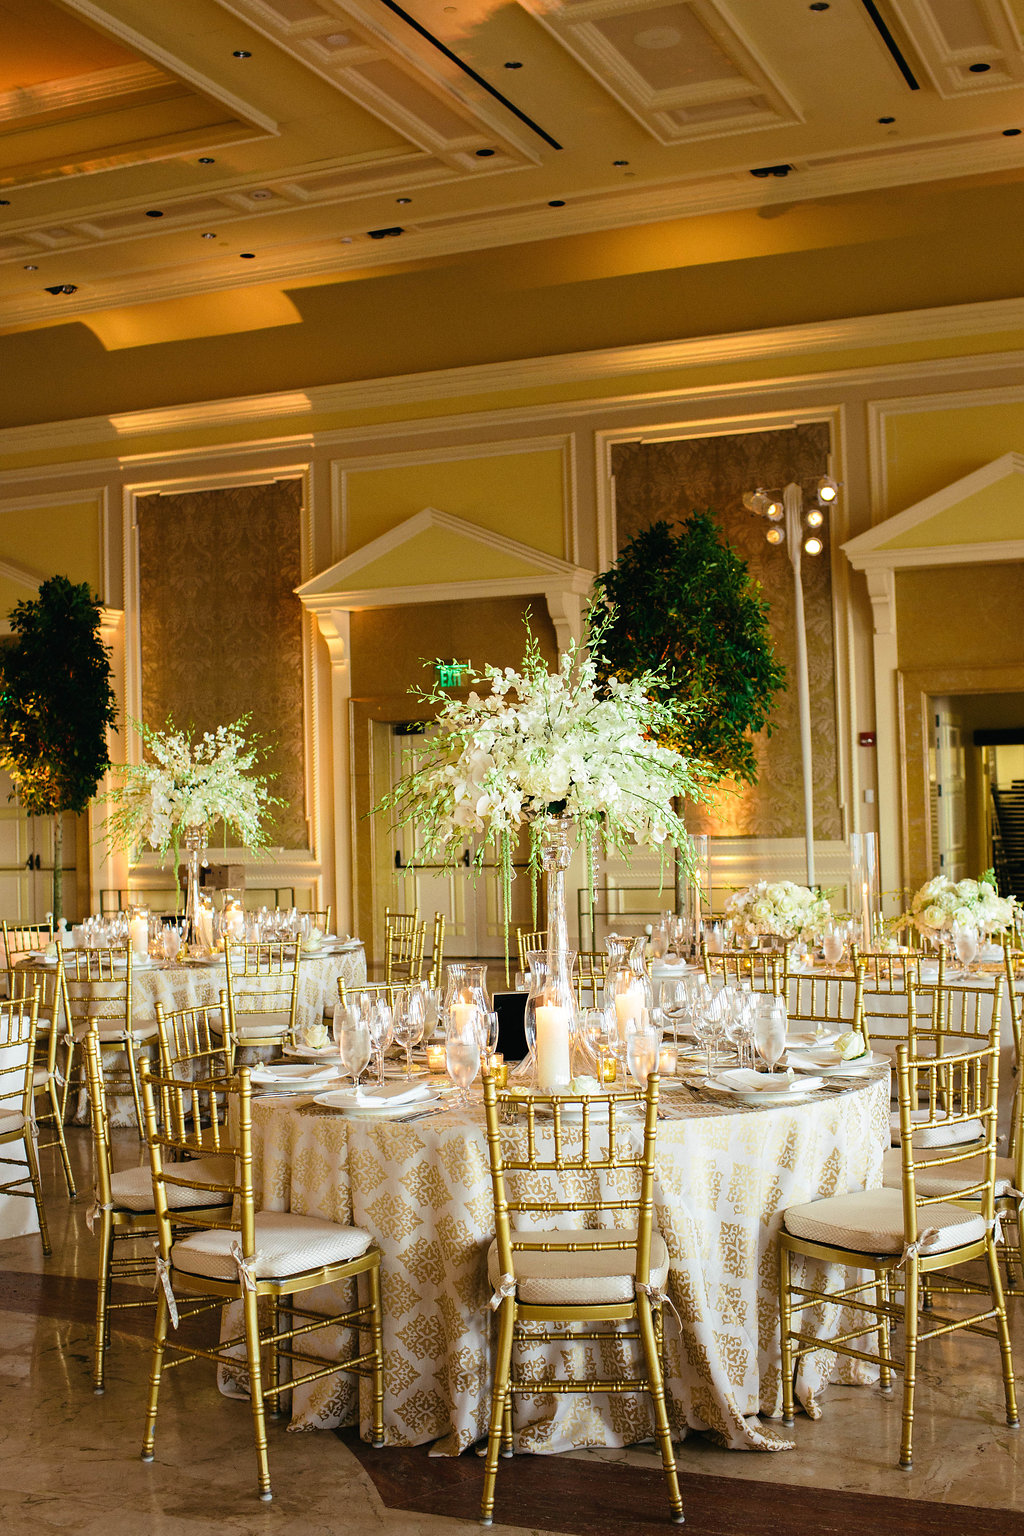 Palm Beach Glamour at The Breakers - Posh Parties